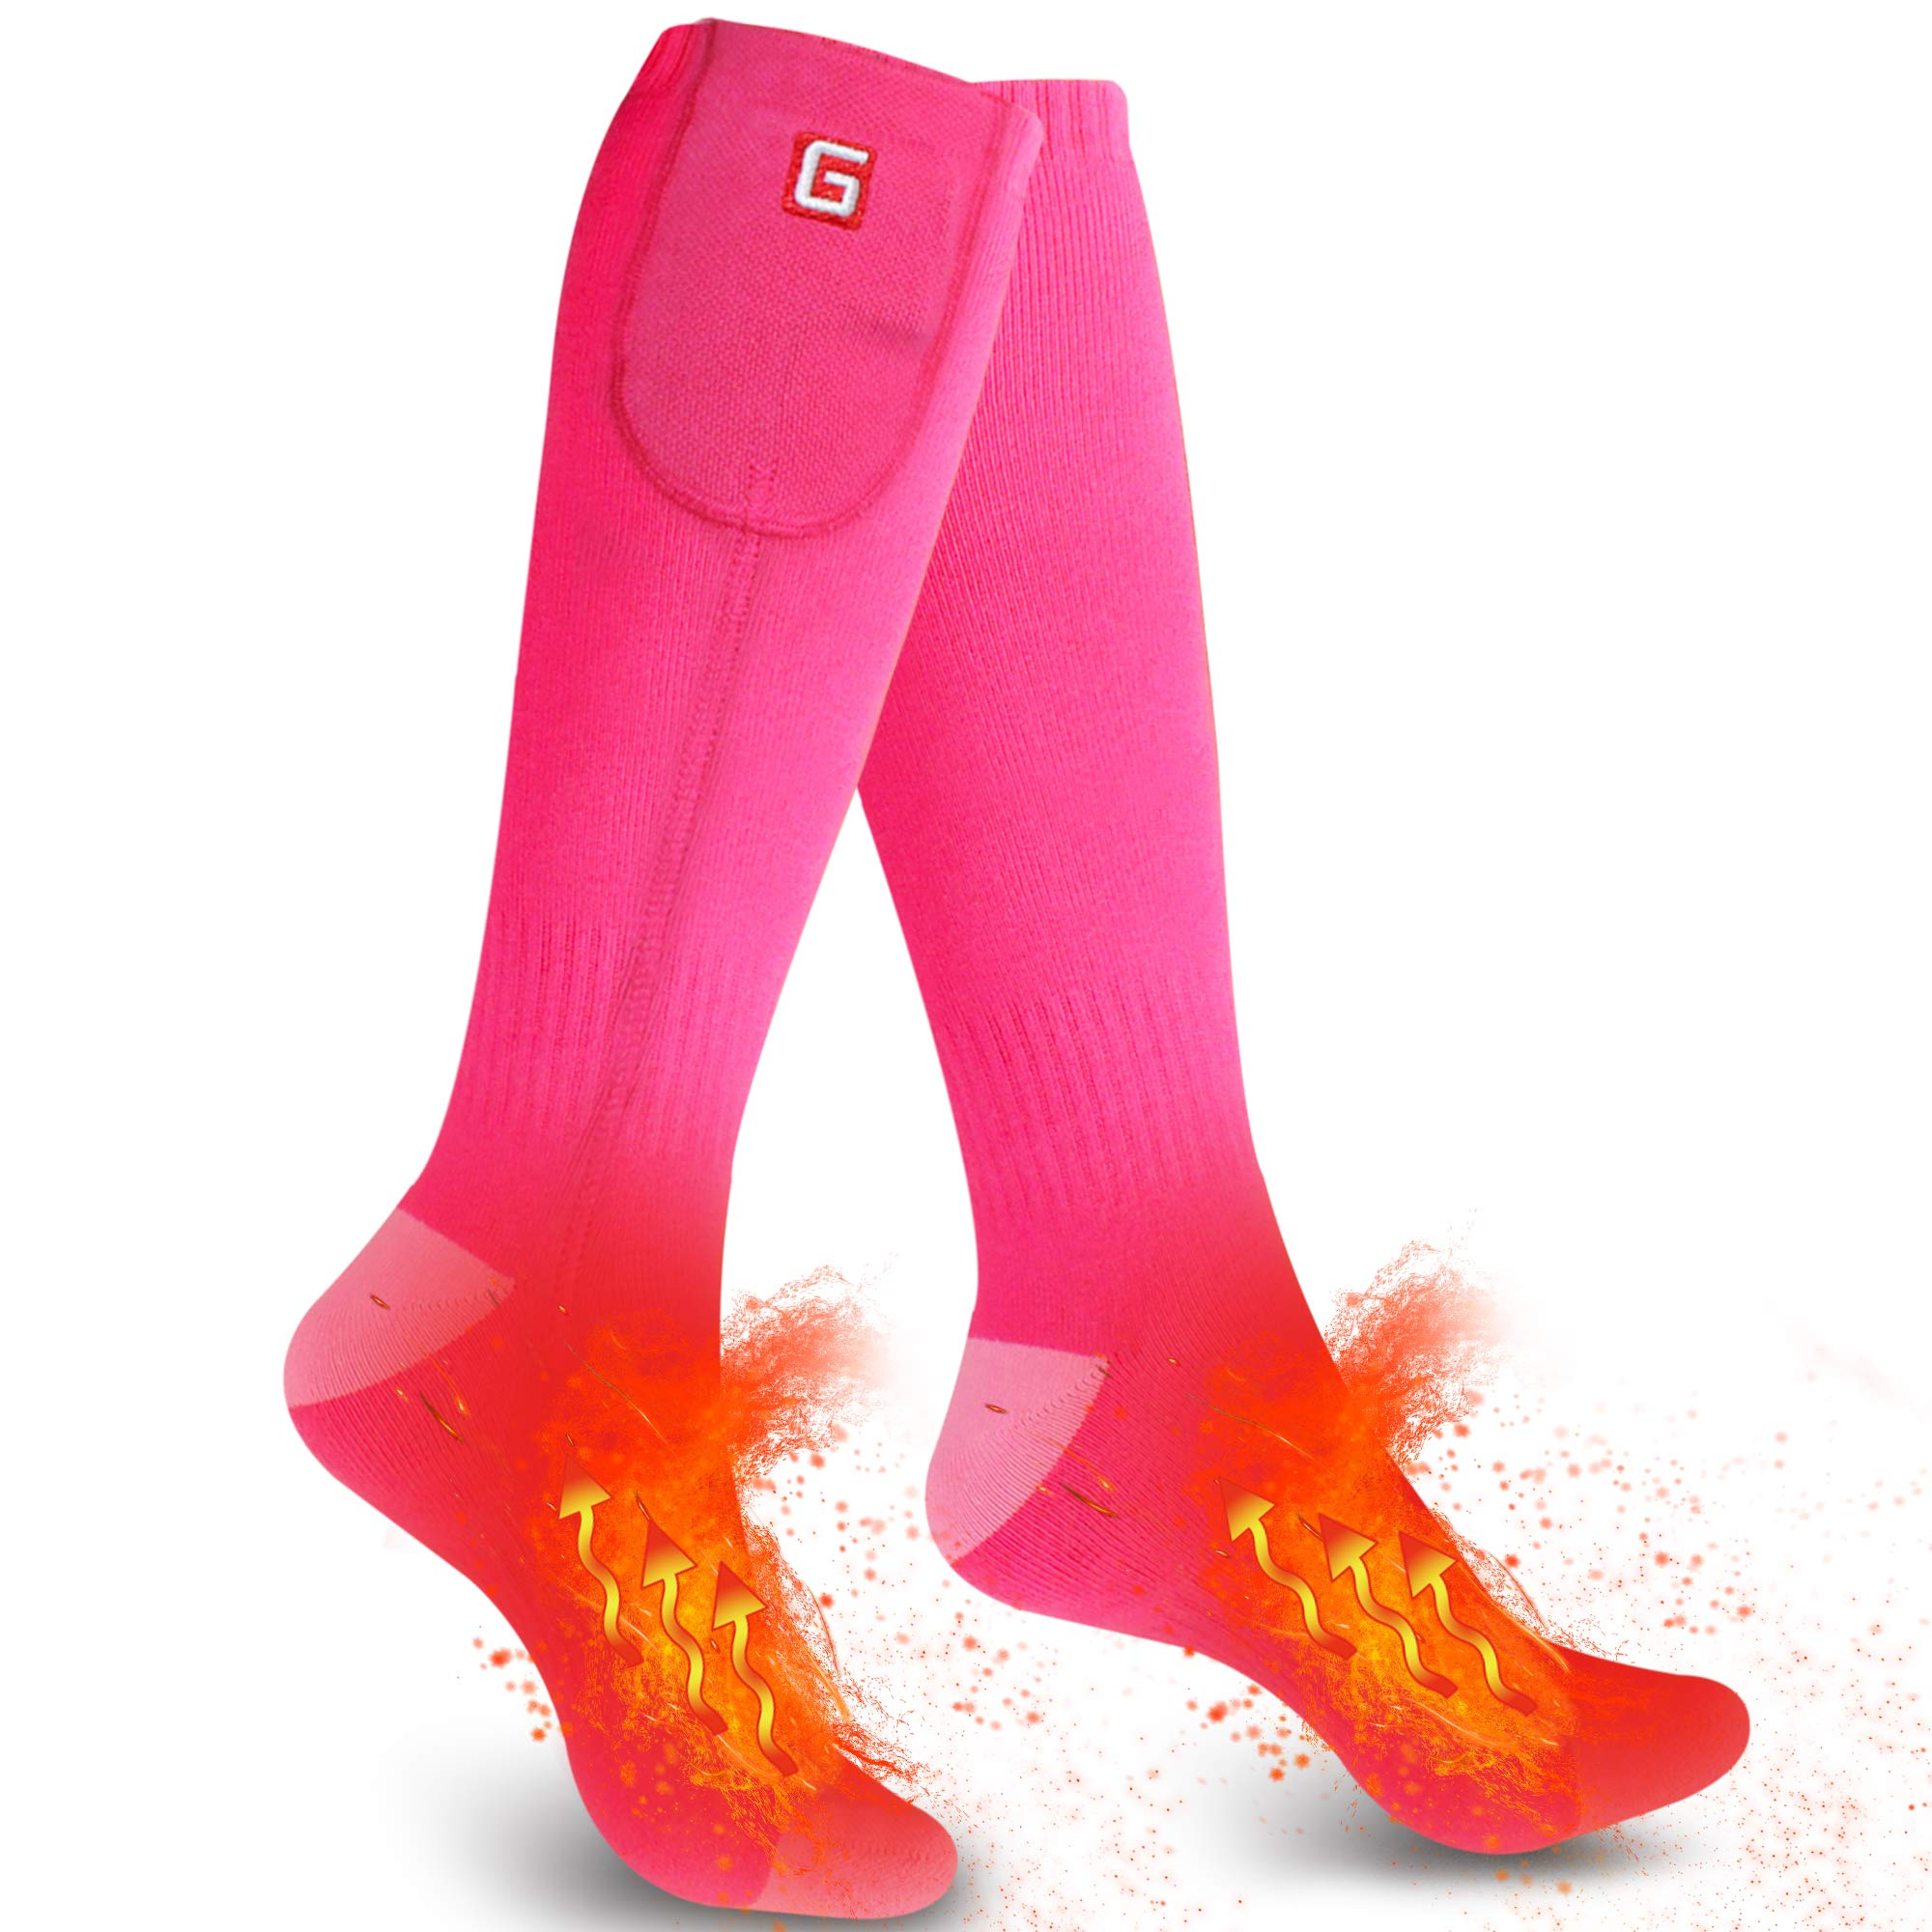 Autocastle Rechargeable Electric Heated Socks,Men Women Battery Powered Heated Socks Kit,Winter Warm Thermal Heated Socks for Chronically Cold Feet,Novelty Sports Outdoors Camping Hiking Socks (Pink) by Autocastle